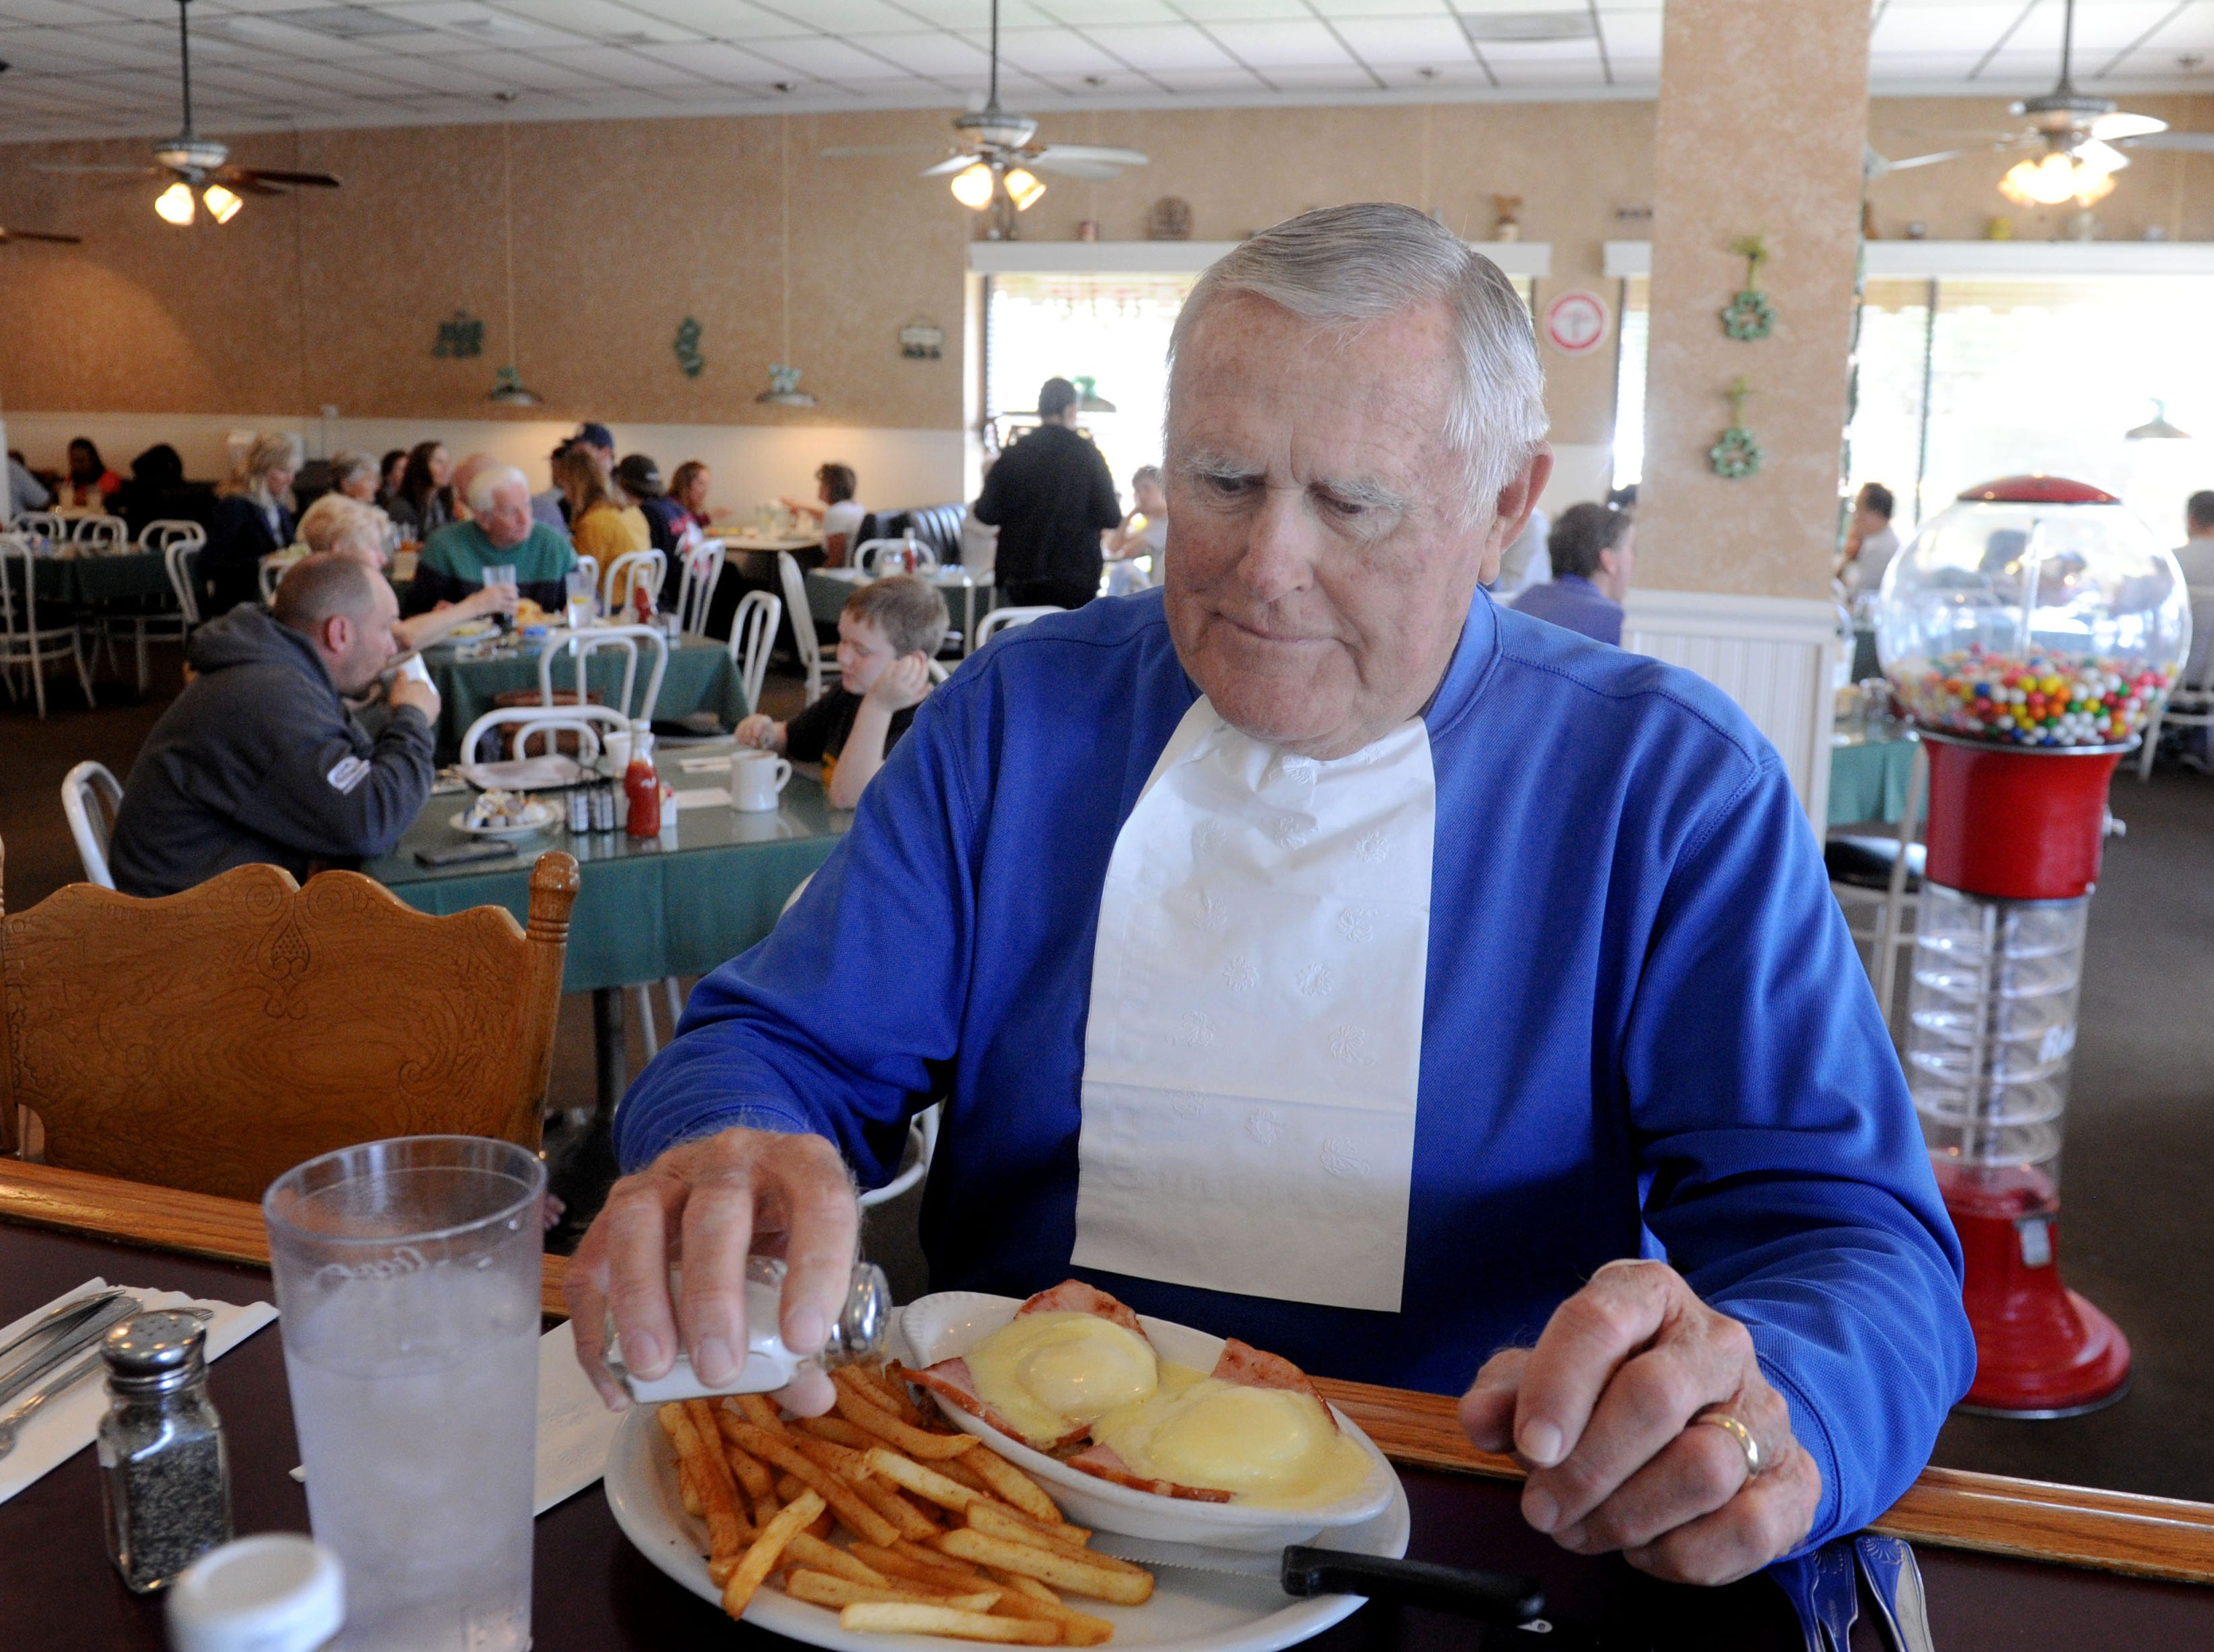 Chuck Croll prepares to eat his eggs Benedict at Jessica's Cafe. The place is pleasant and bustling spot in Camarillo.